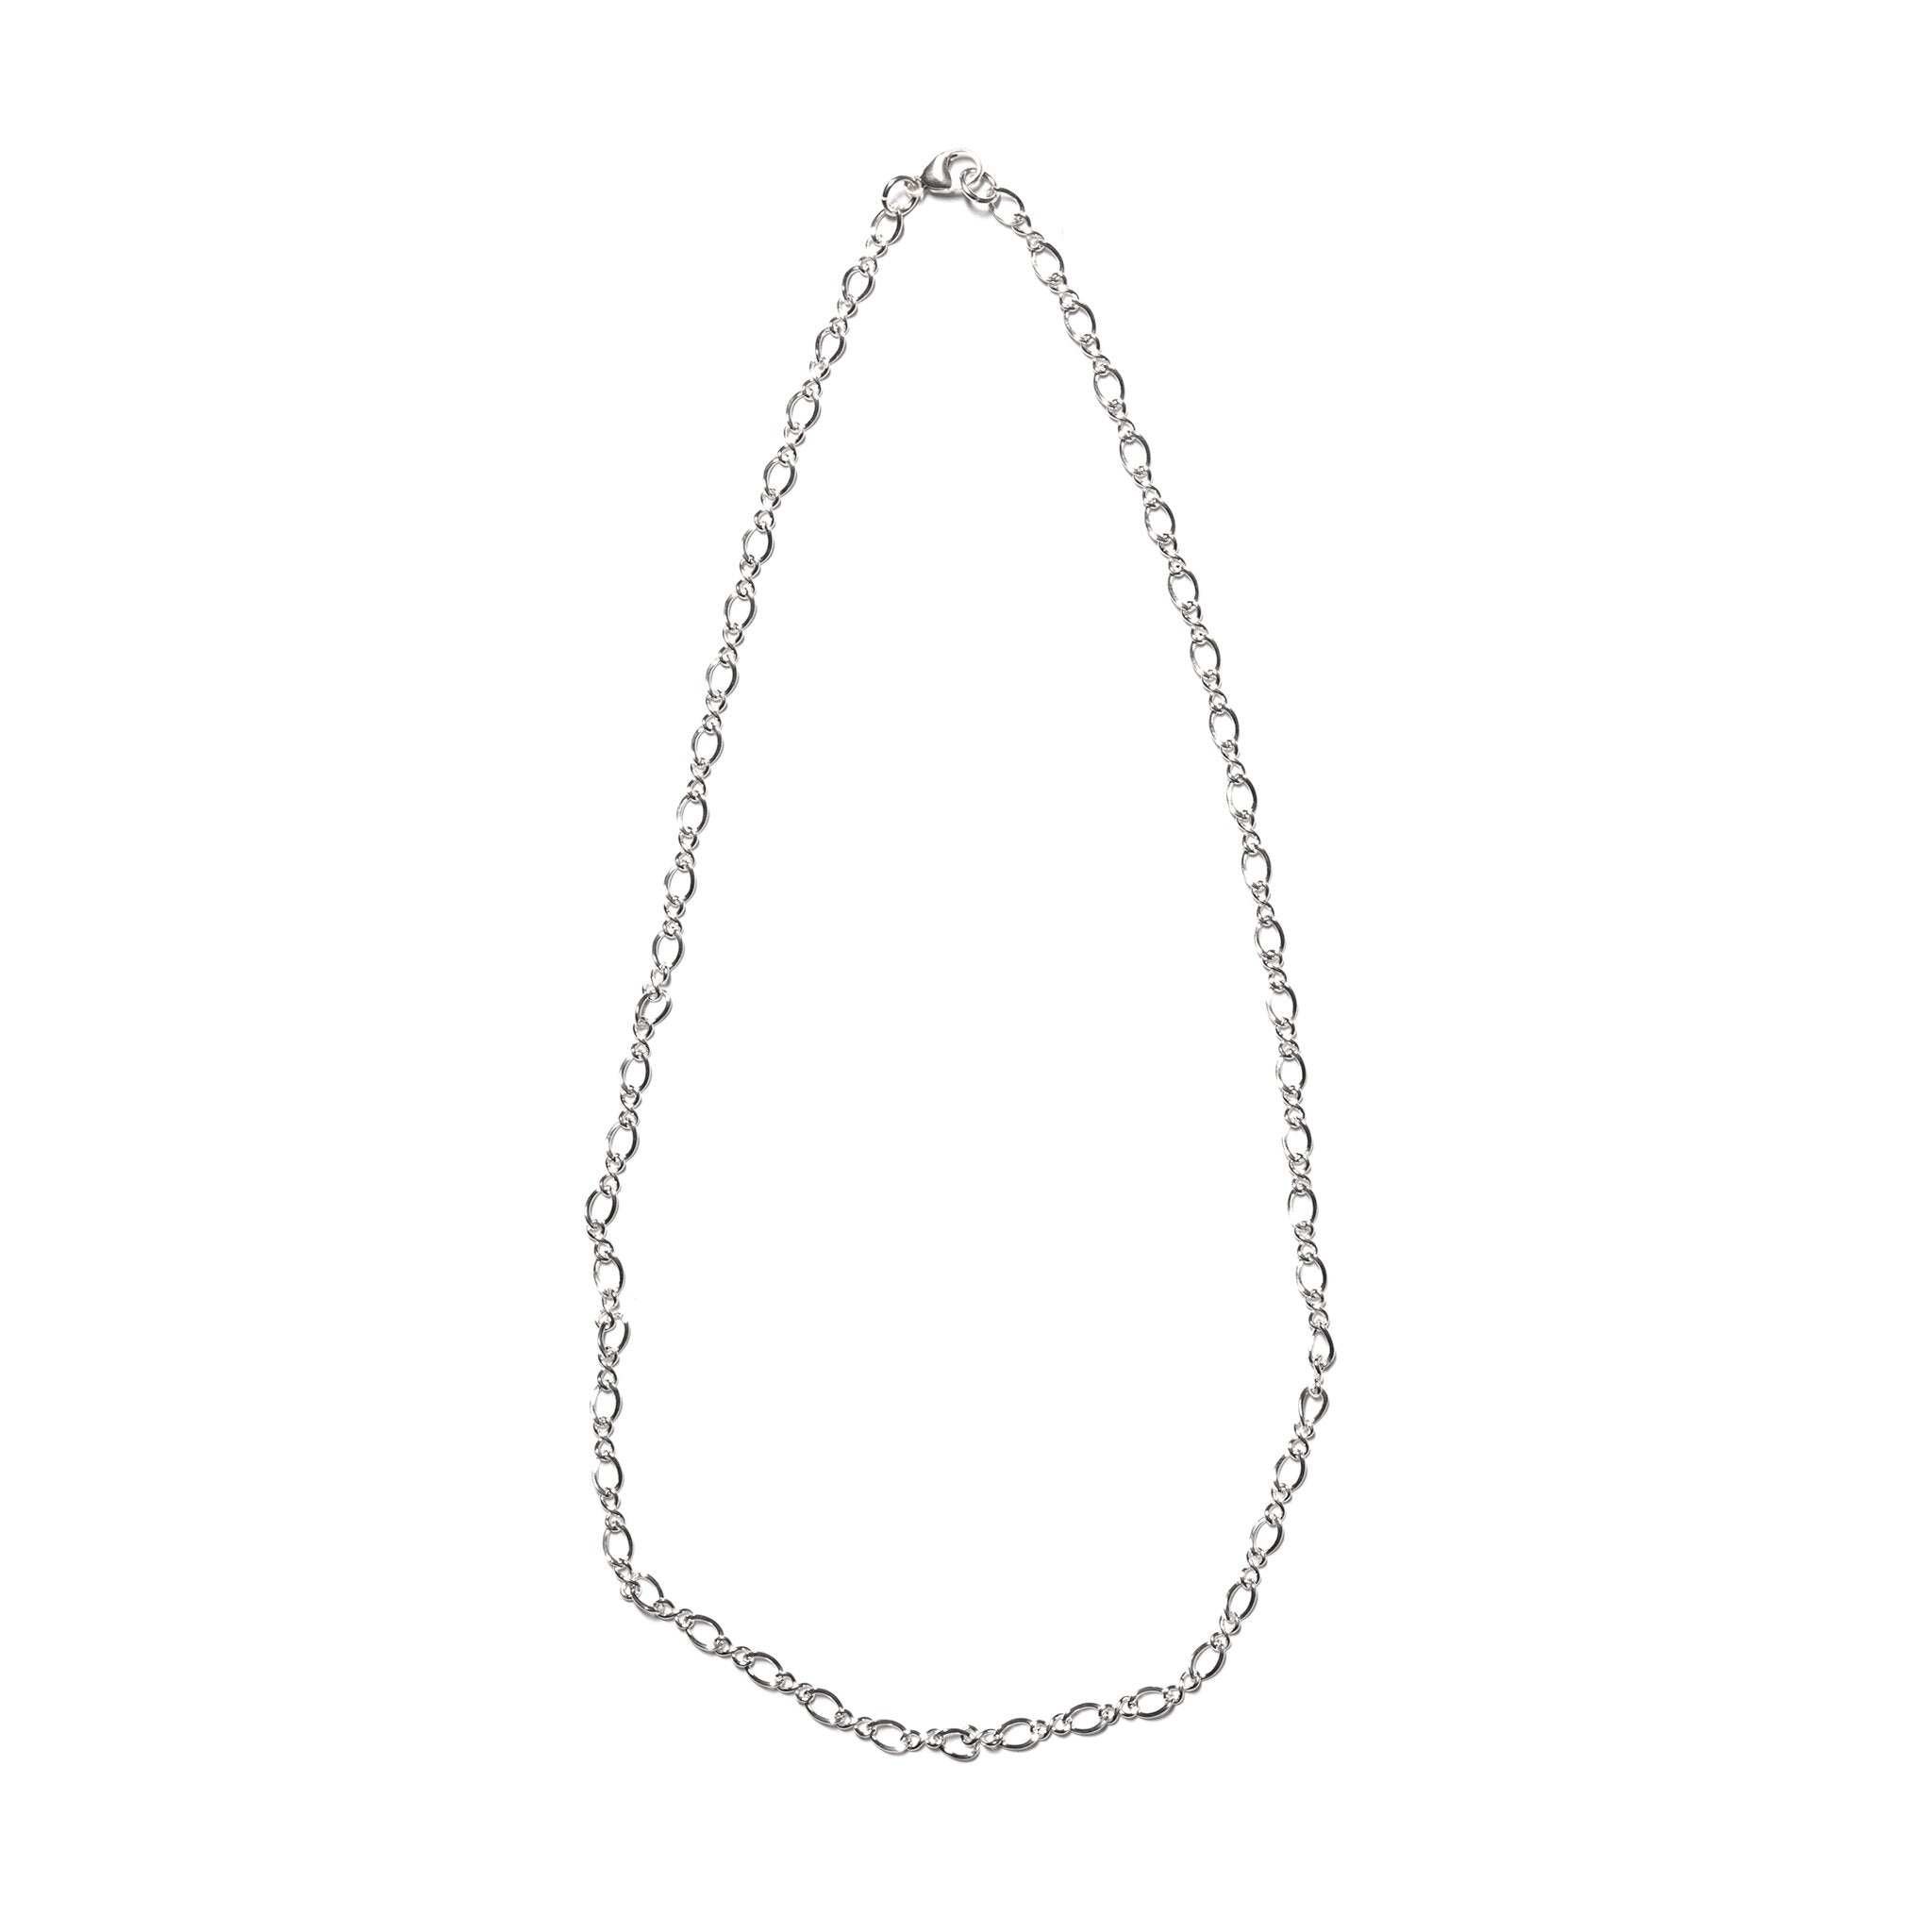 MAPLE JEWELERY FIGURE EIGHT CHAING (SILVER 925)